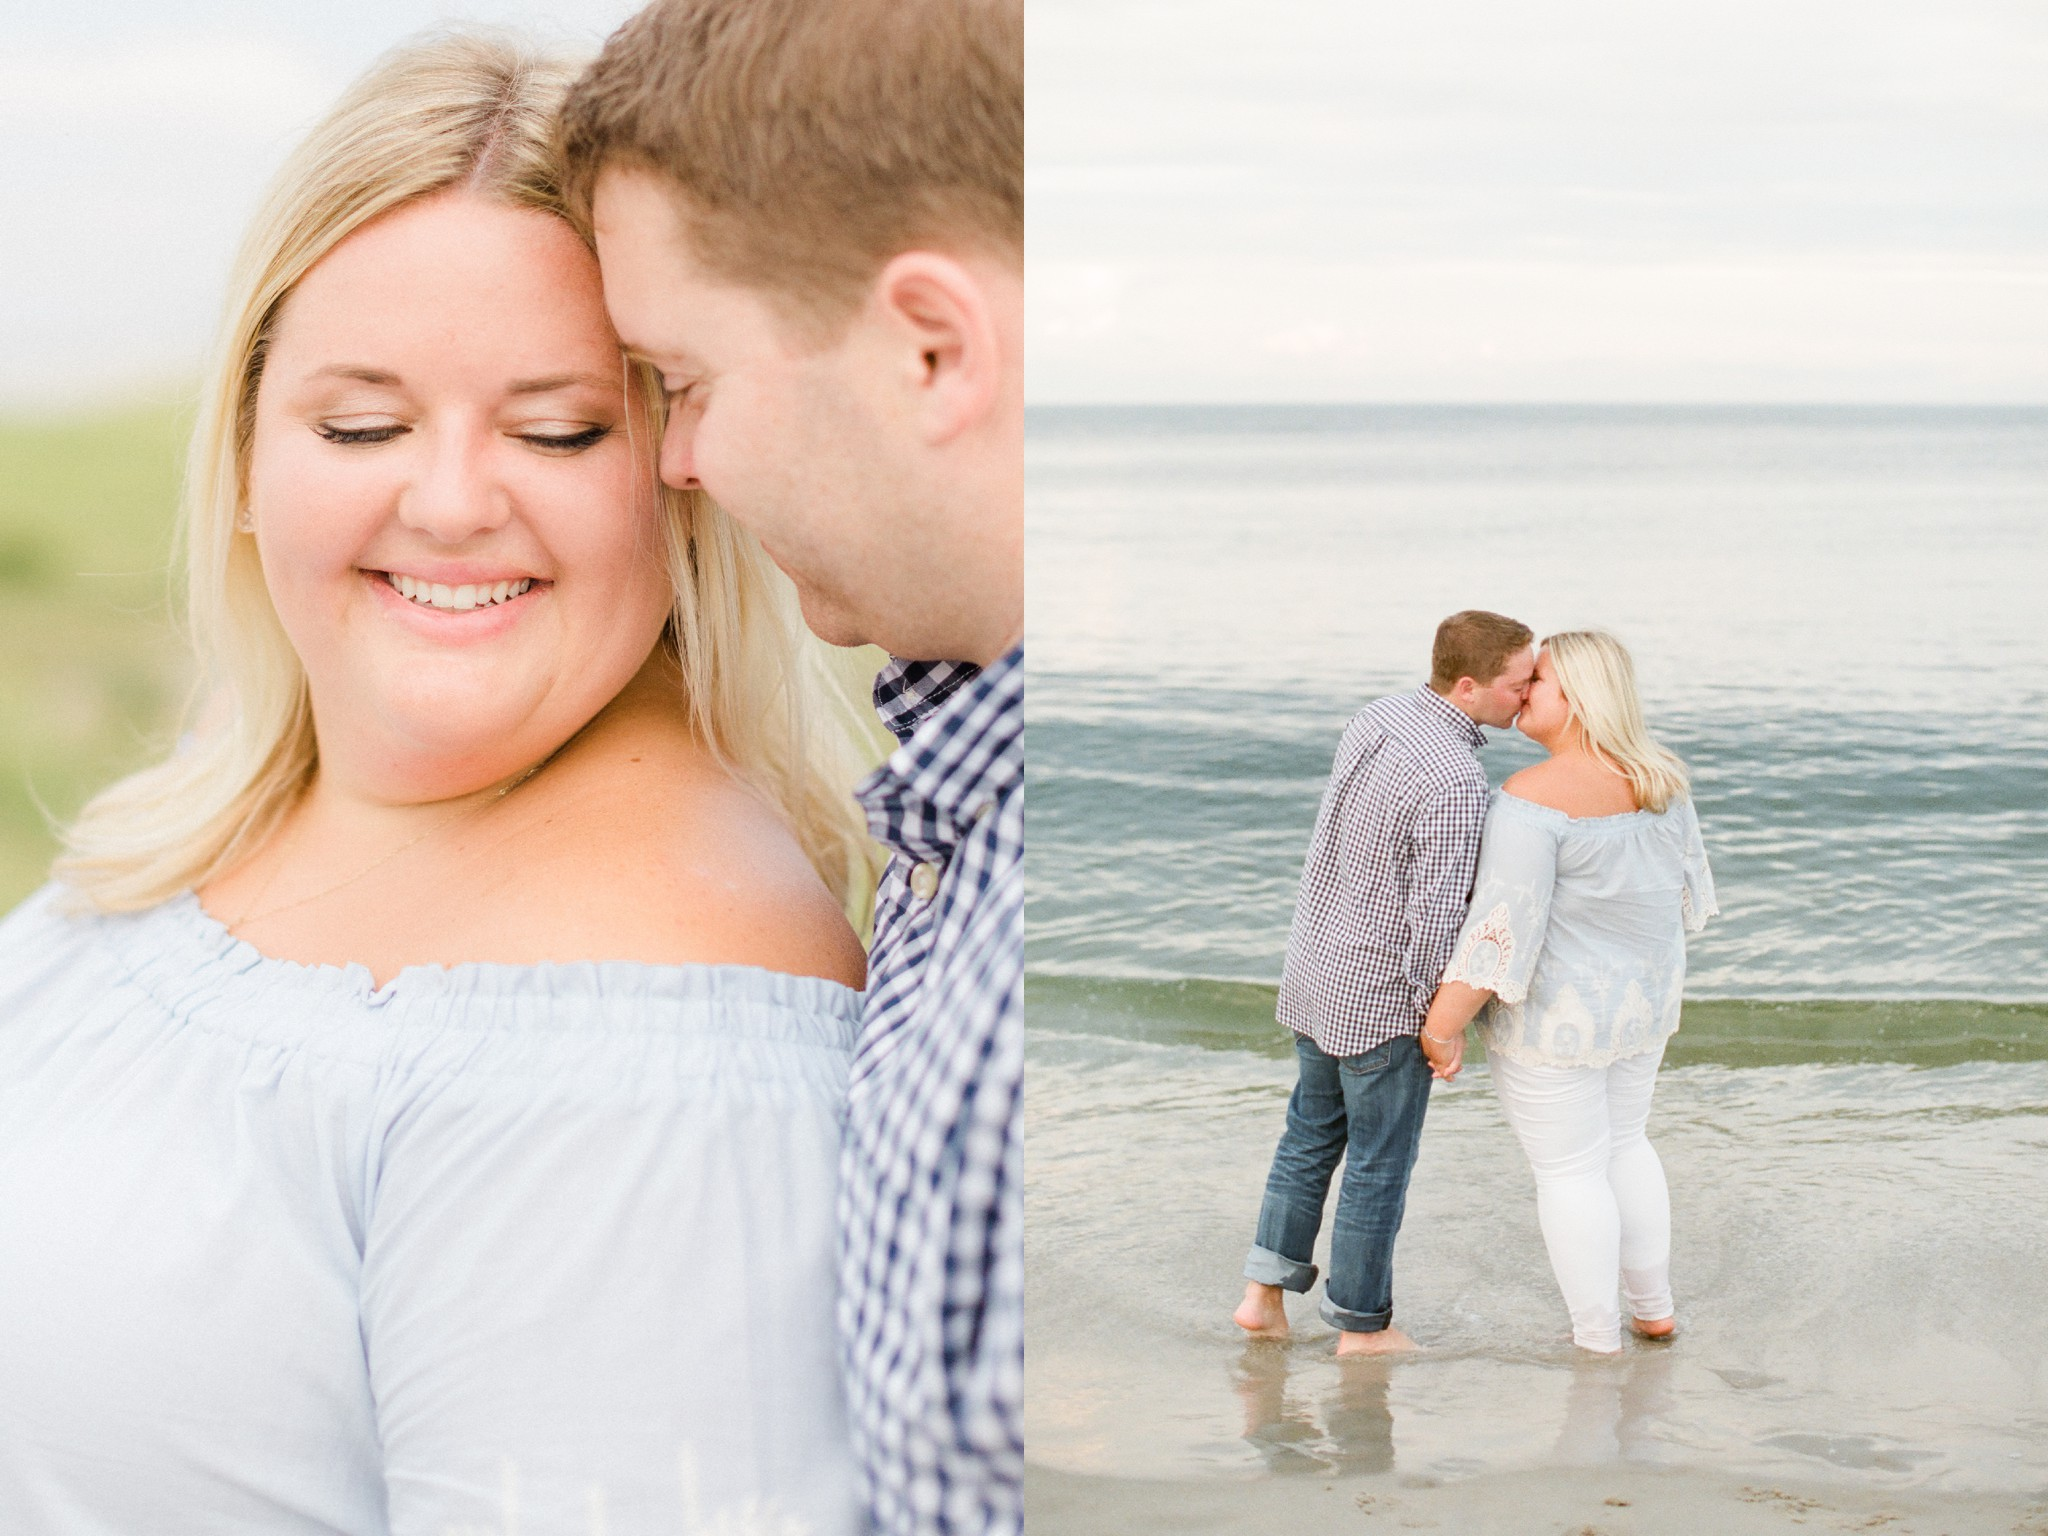 deborah_zoe_photography_engagement_session_0118.JPG